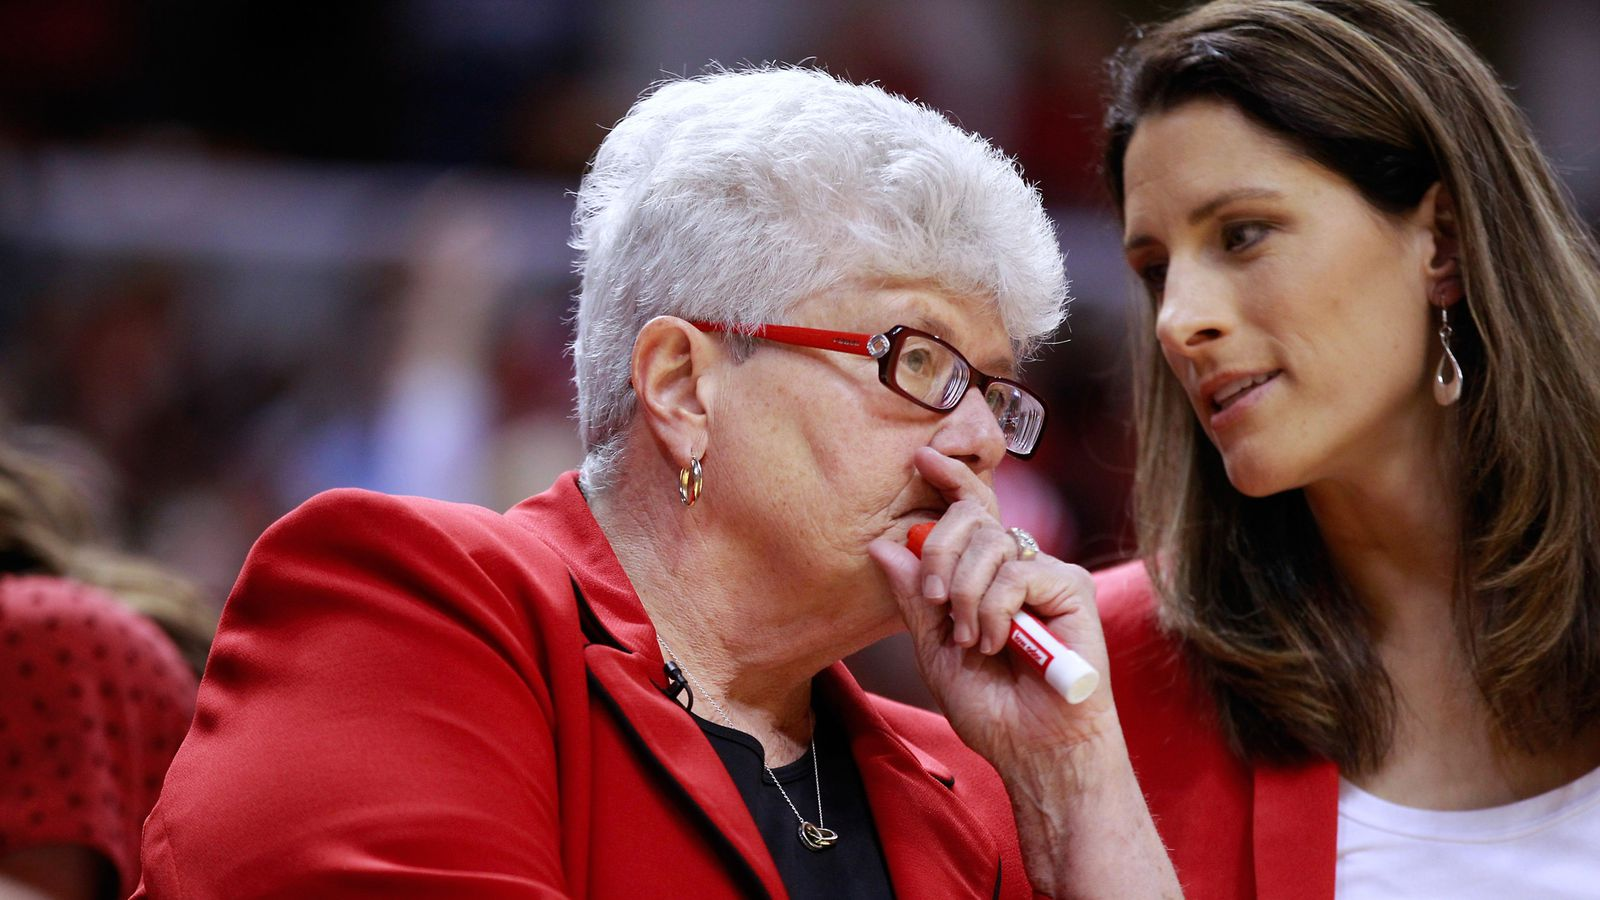 Indiana Fever Head Coach Lin Dunn to retire after 2014 season - Swish Appeal